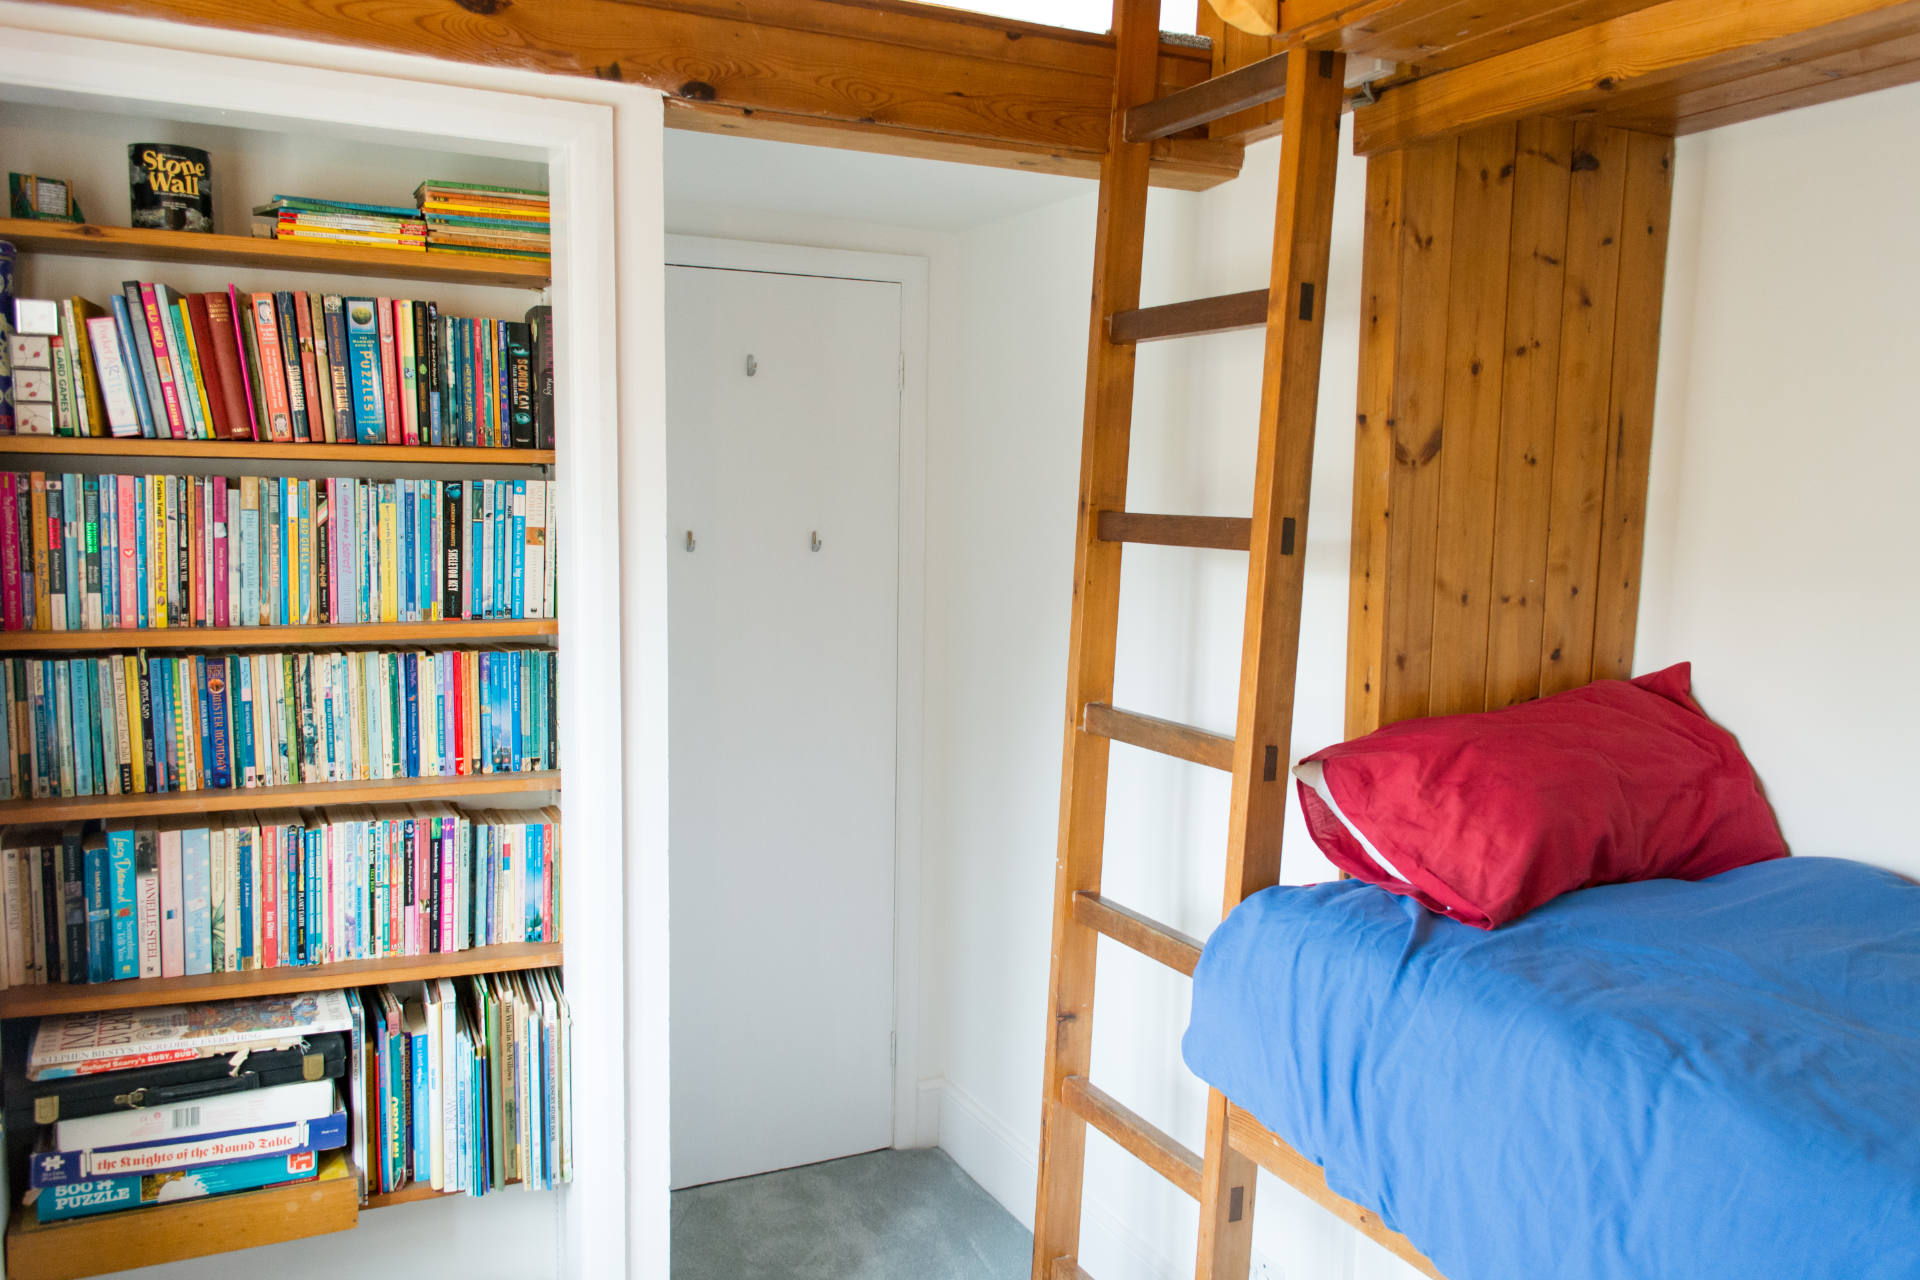 Family holiday cottage bedrooms with built in bunk bed rooms.